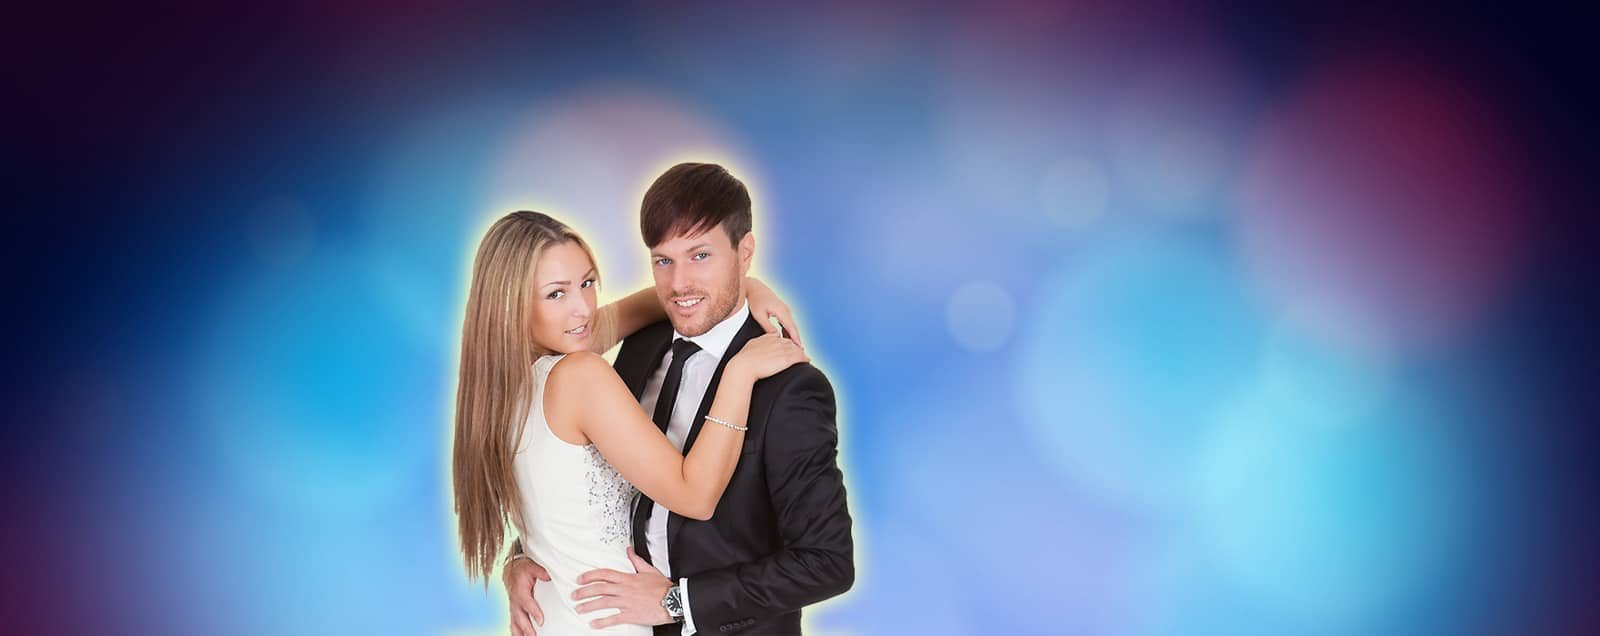 dating sites in grenada 100% free online dating site grenada for singles now a day there are thousands of dating sites claiming 100% free and these sites are not truly 100% free these sites are partially free and later on you need to upgrade your membership or they have free trial period for few days.